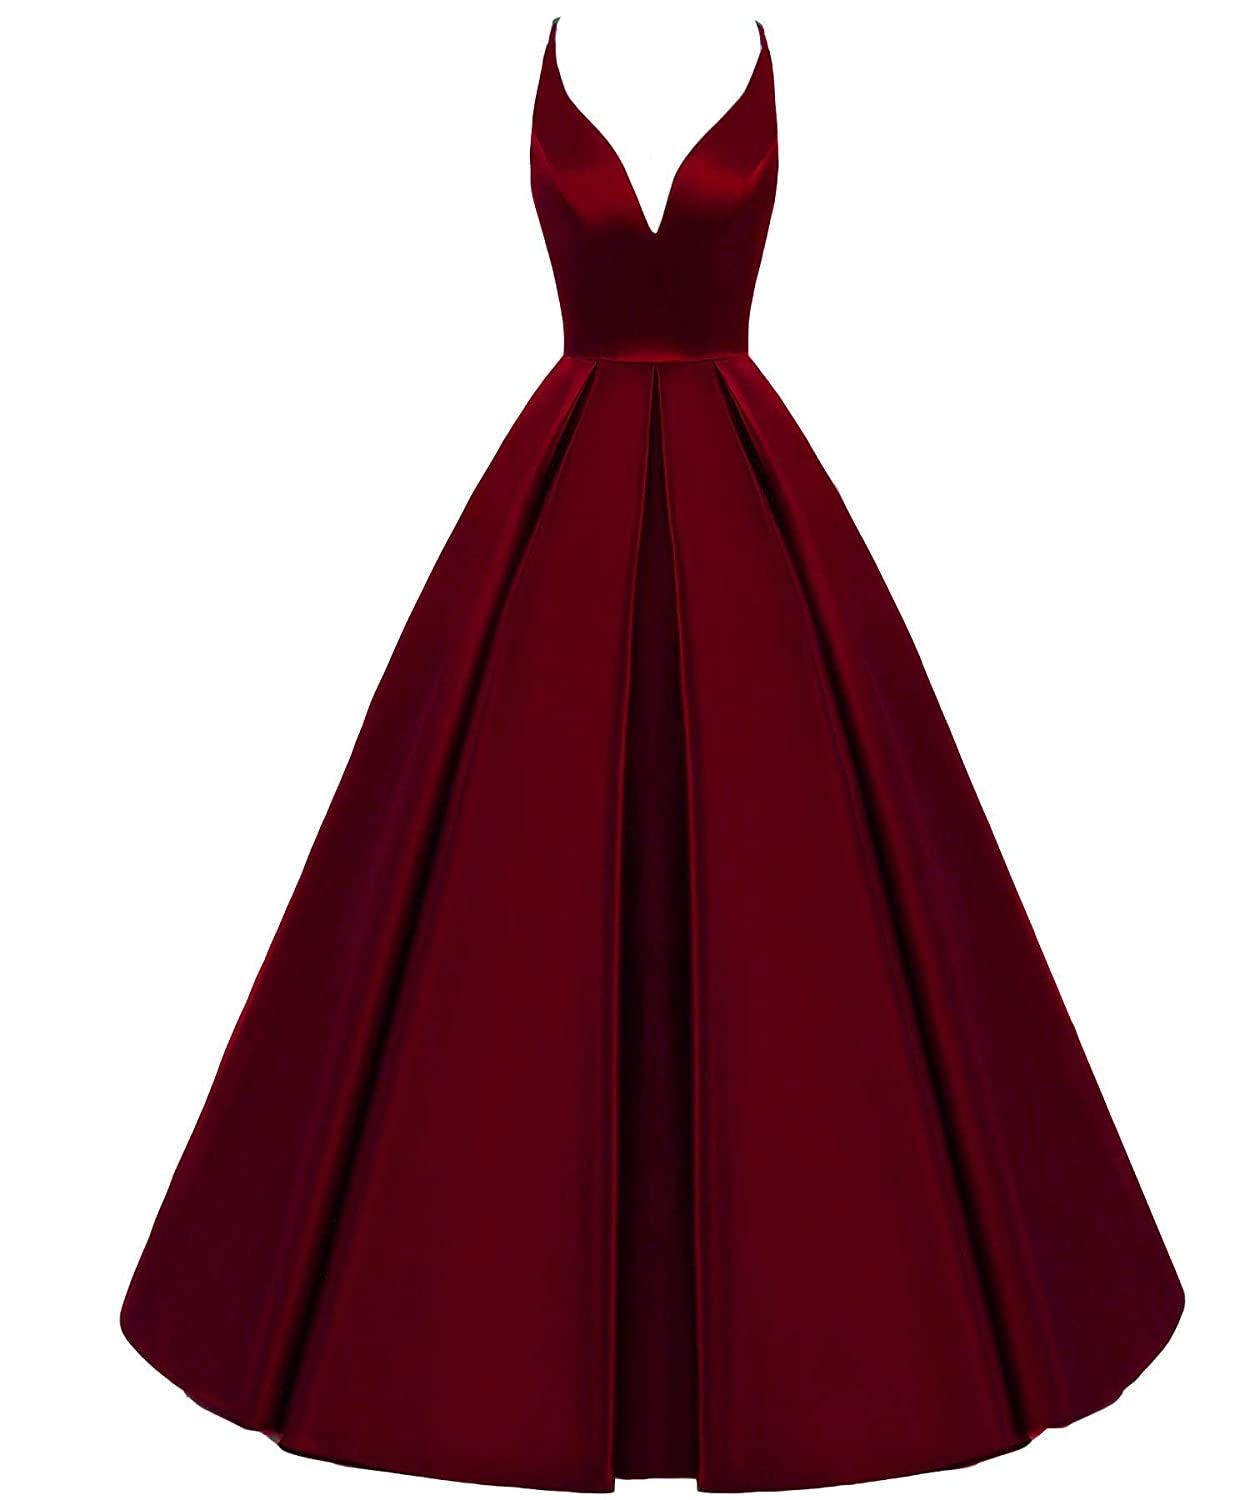 Darkburgundy Stylefun Womens Satin V Neck Prom Dress Spaghetti Straps Evening Party Formal Gowns XIN003